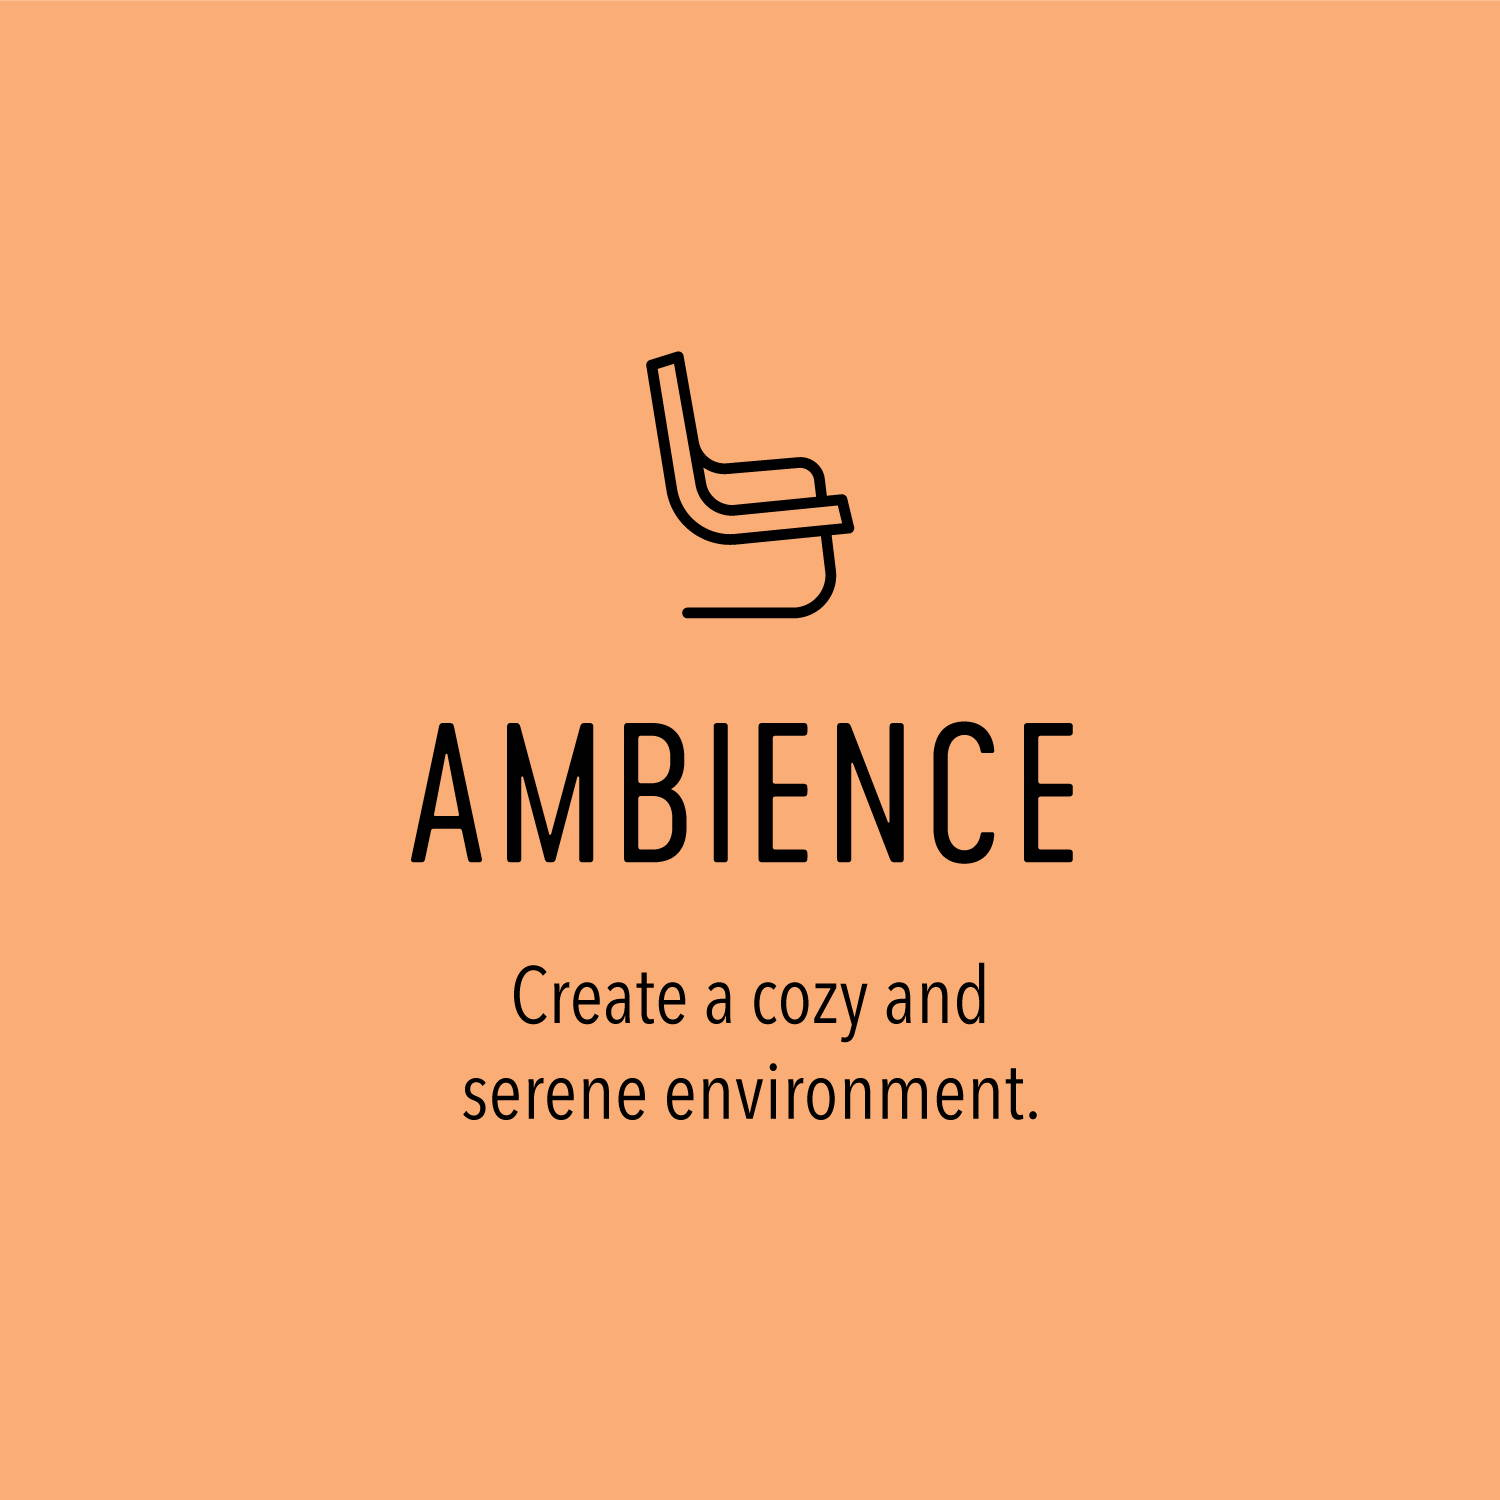 Hygge - Ambience